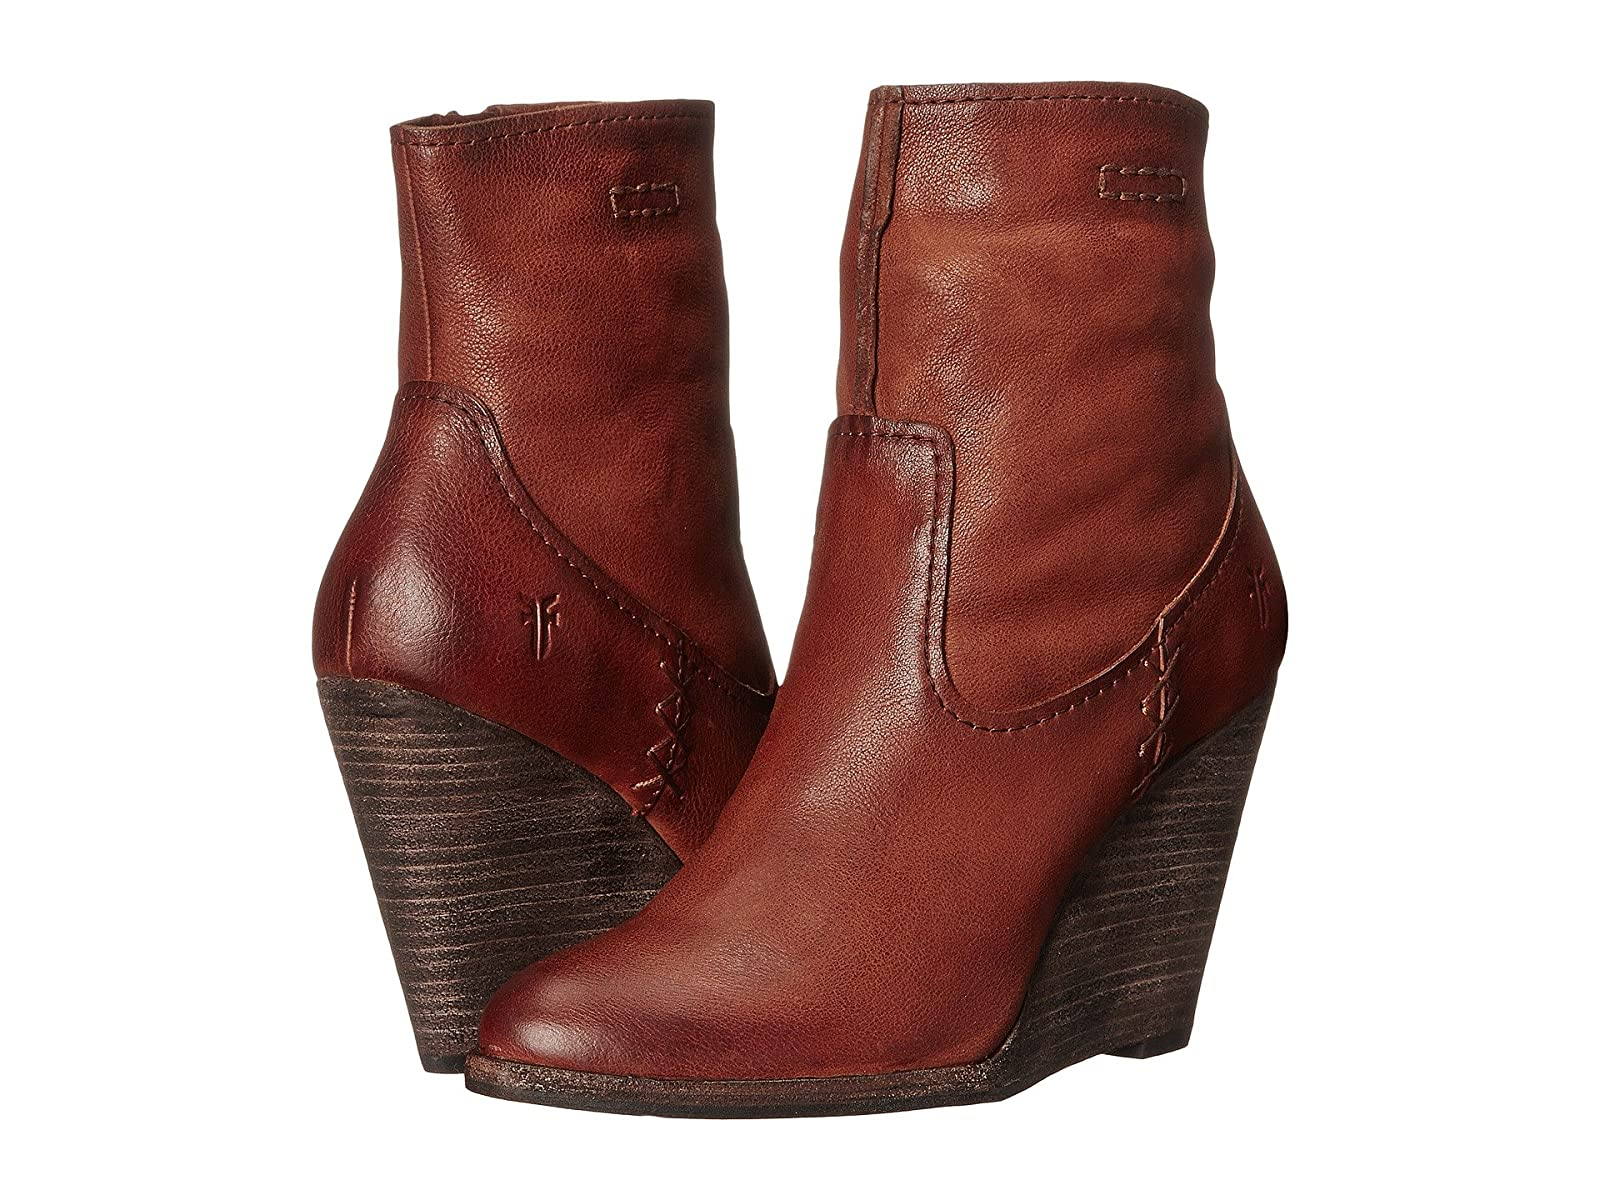 Frye Cece Artisan ShortCheap and distinctive eye-catching shoes